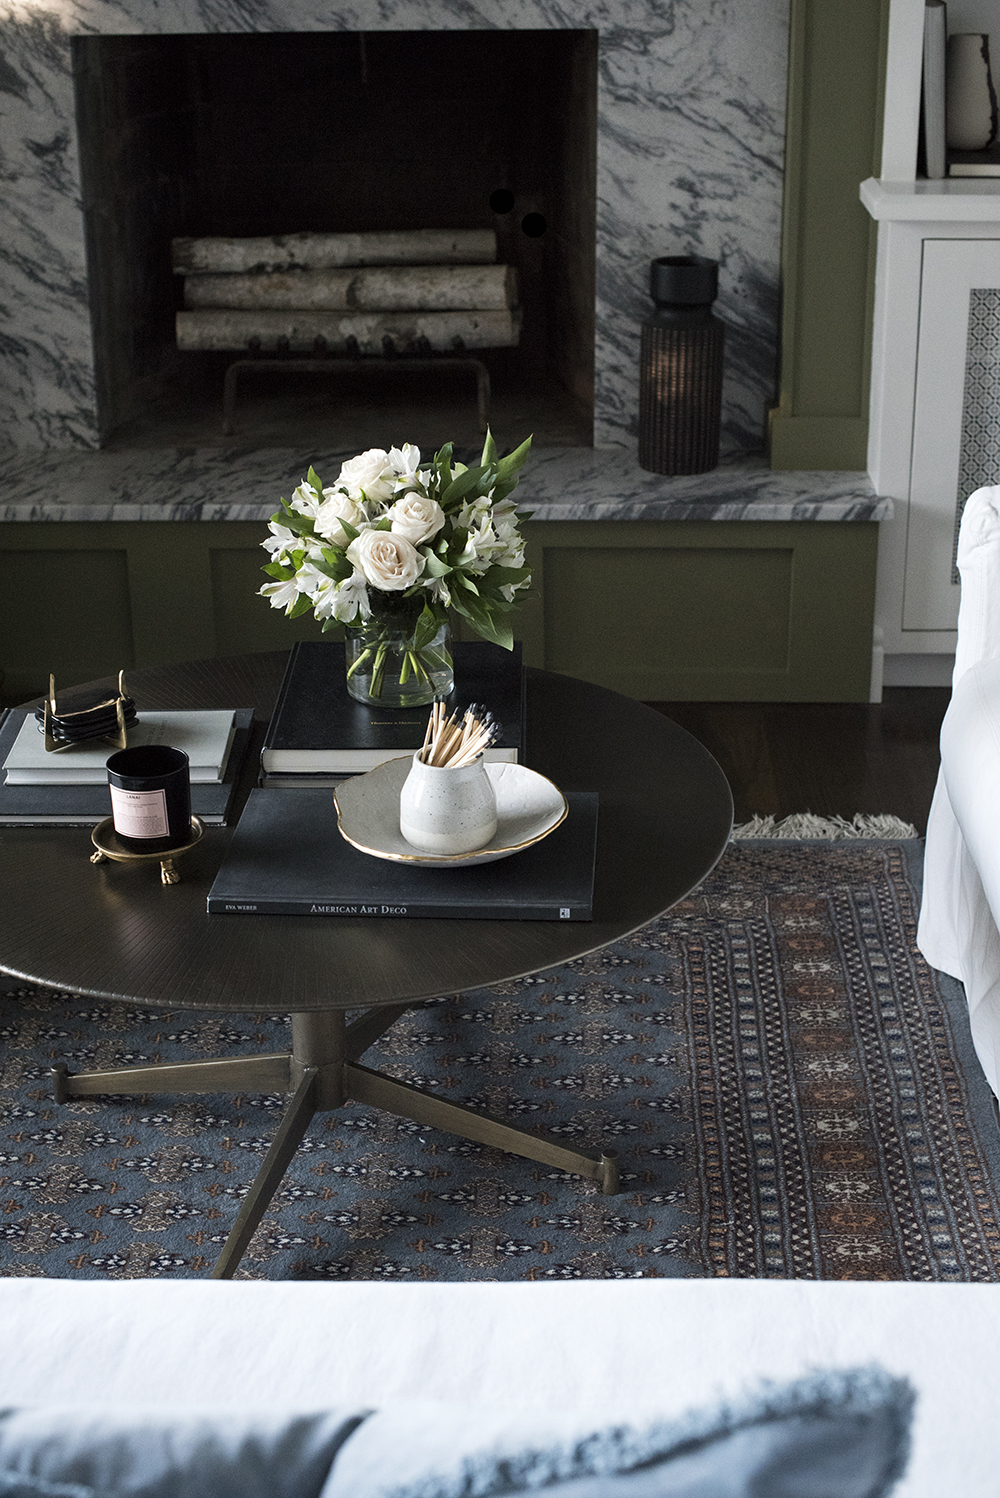 The Best of H&M Home - roomfortuesday.com